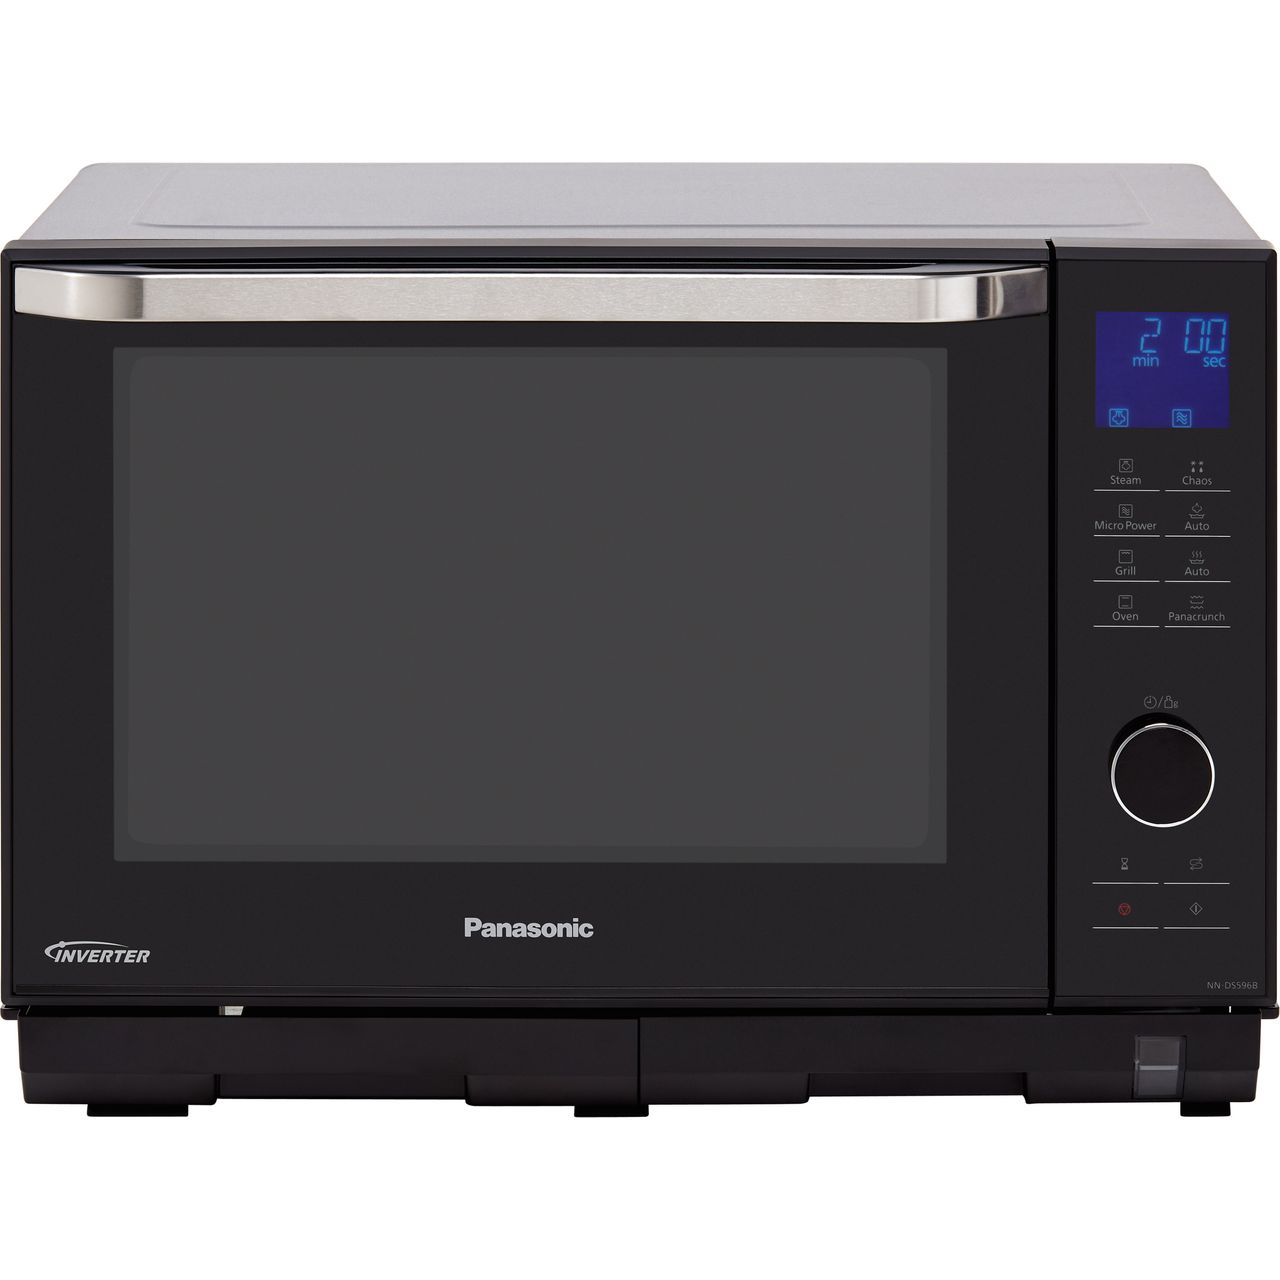 Panasonic 4in1 Steam Nn Ds596bbpq 27 Litre Combination Microwave Oven Black